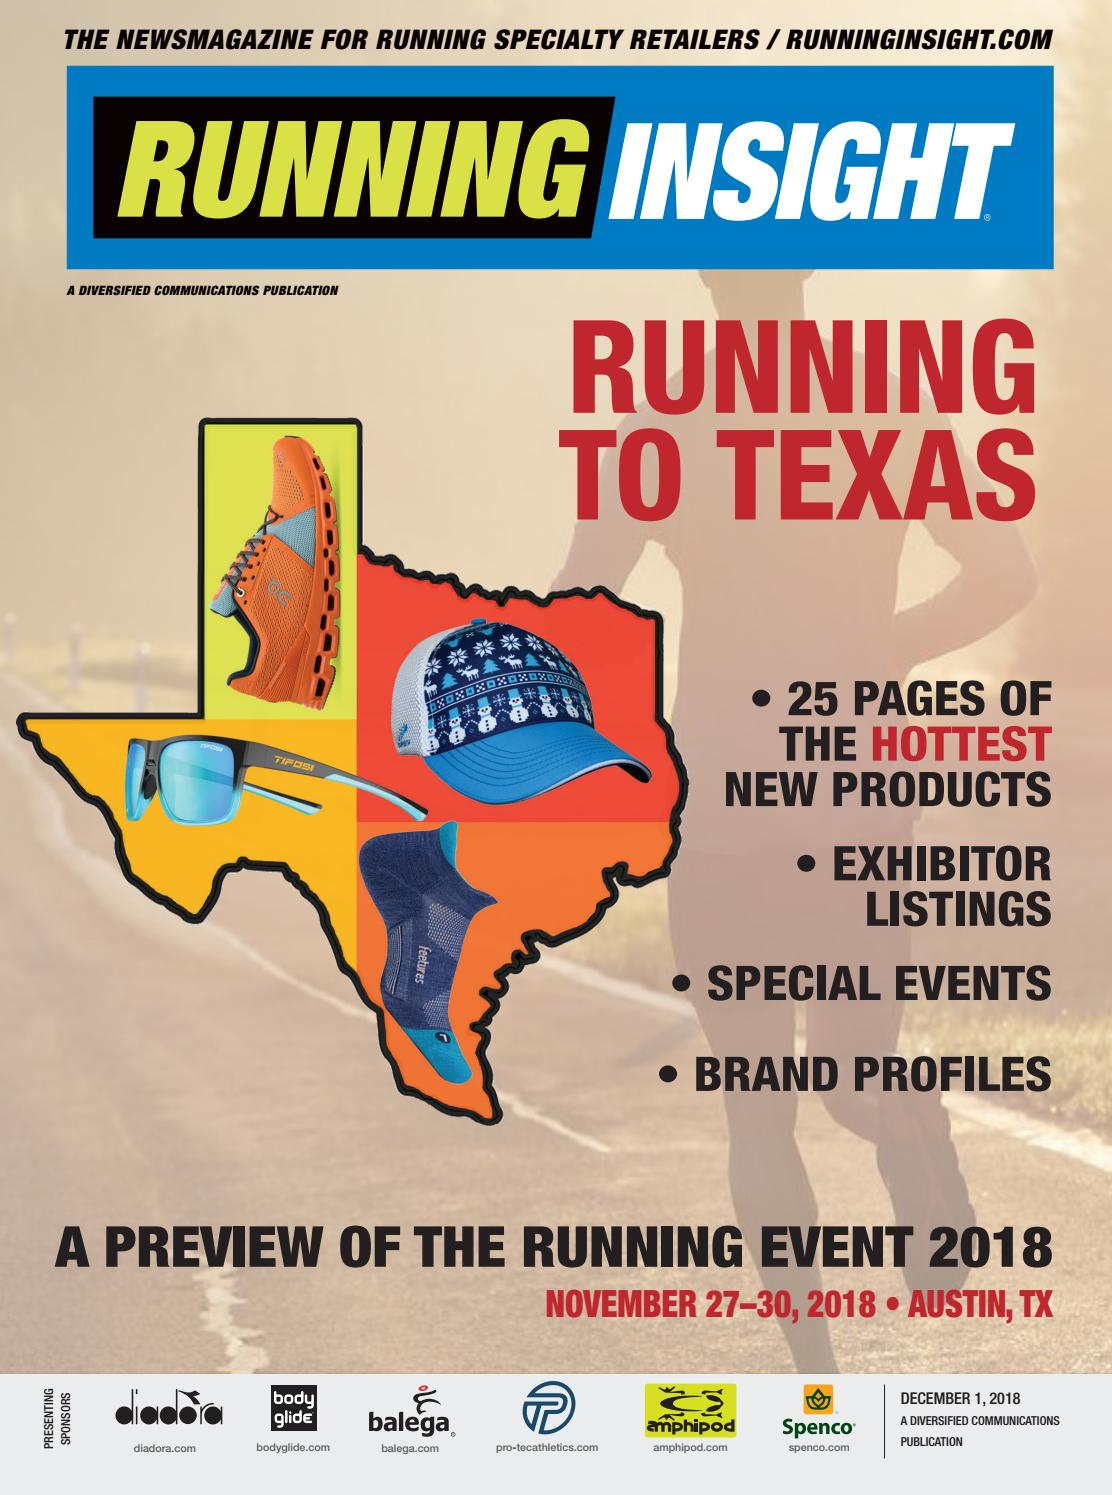 8d4a0544 Running Insight 12.1.18 by Running Insight - issuu